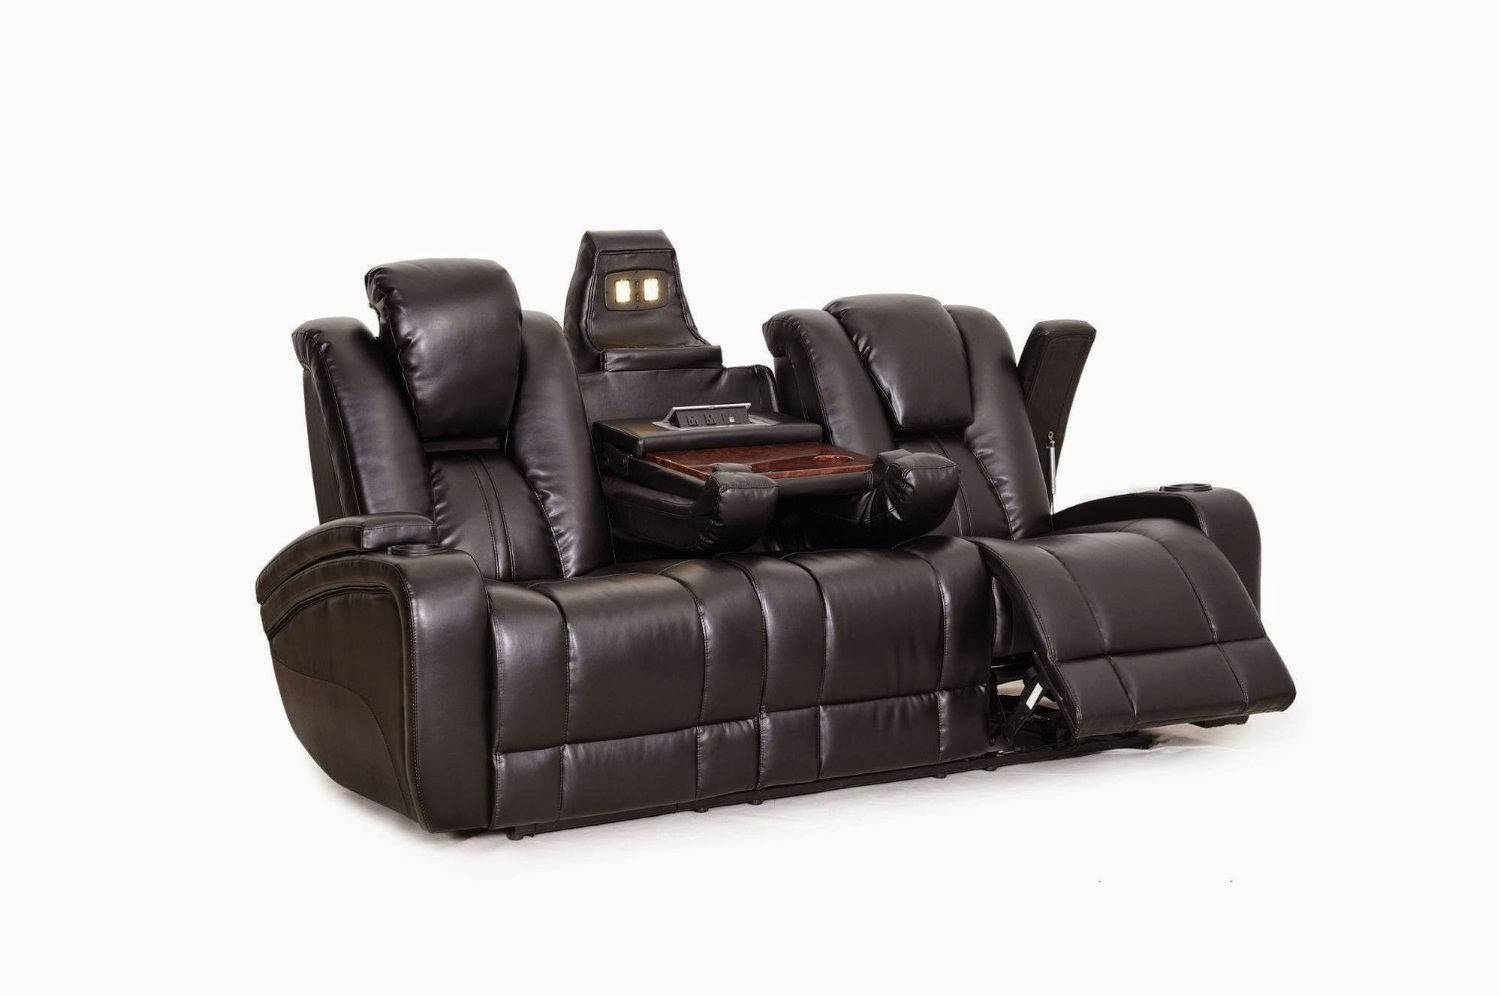 30 the best 2 seater recliner leather sofas. Black Bedroom Furniture Sets. Home Design Ideas